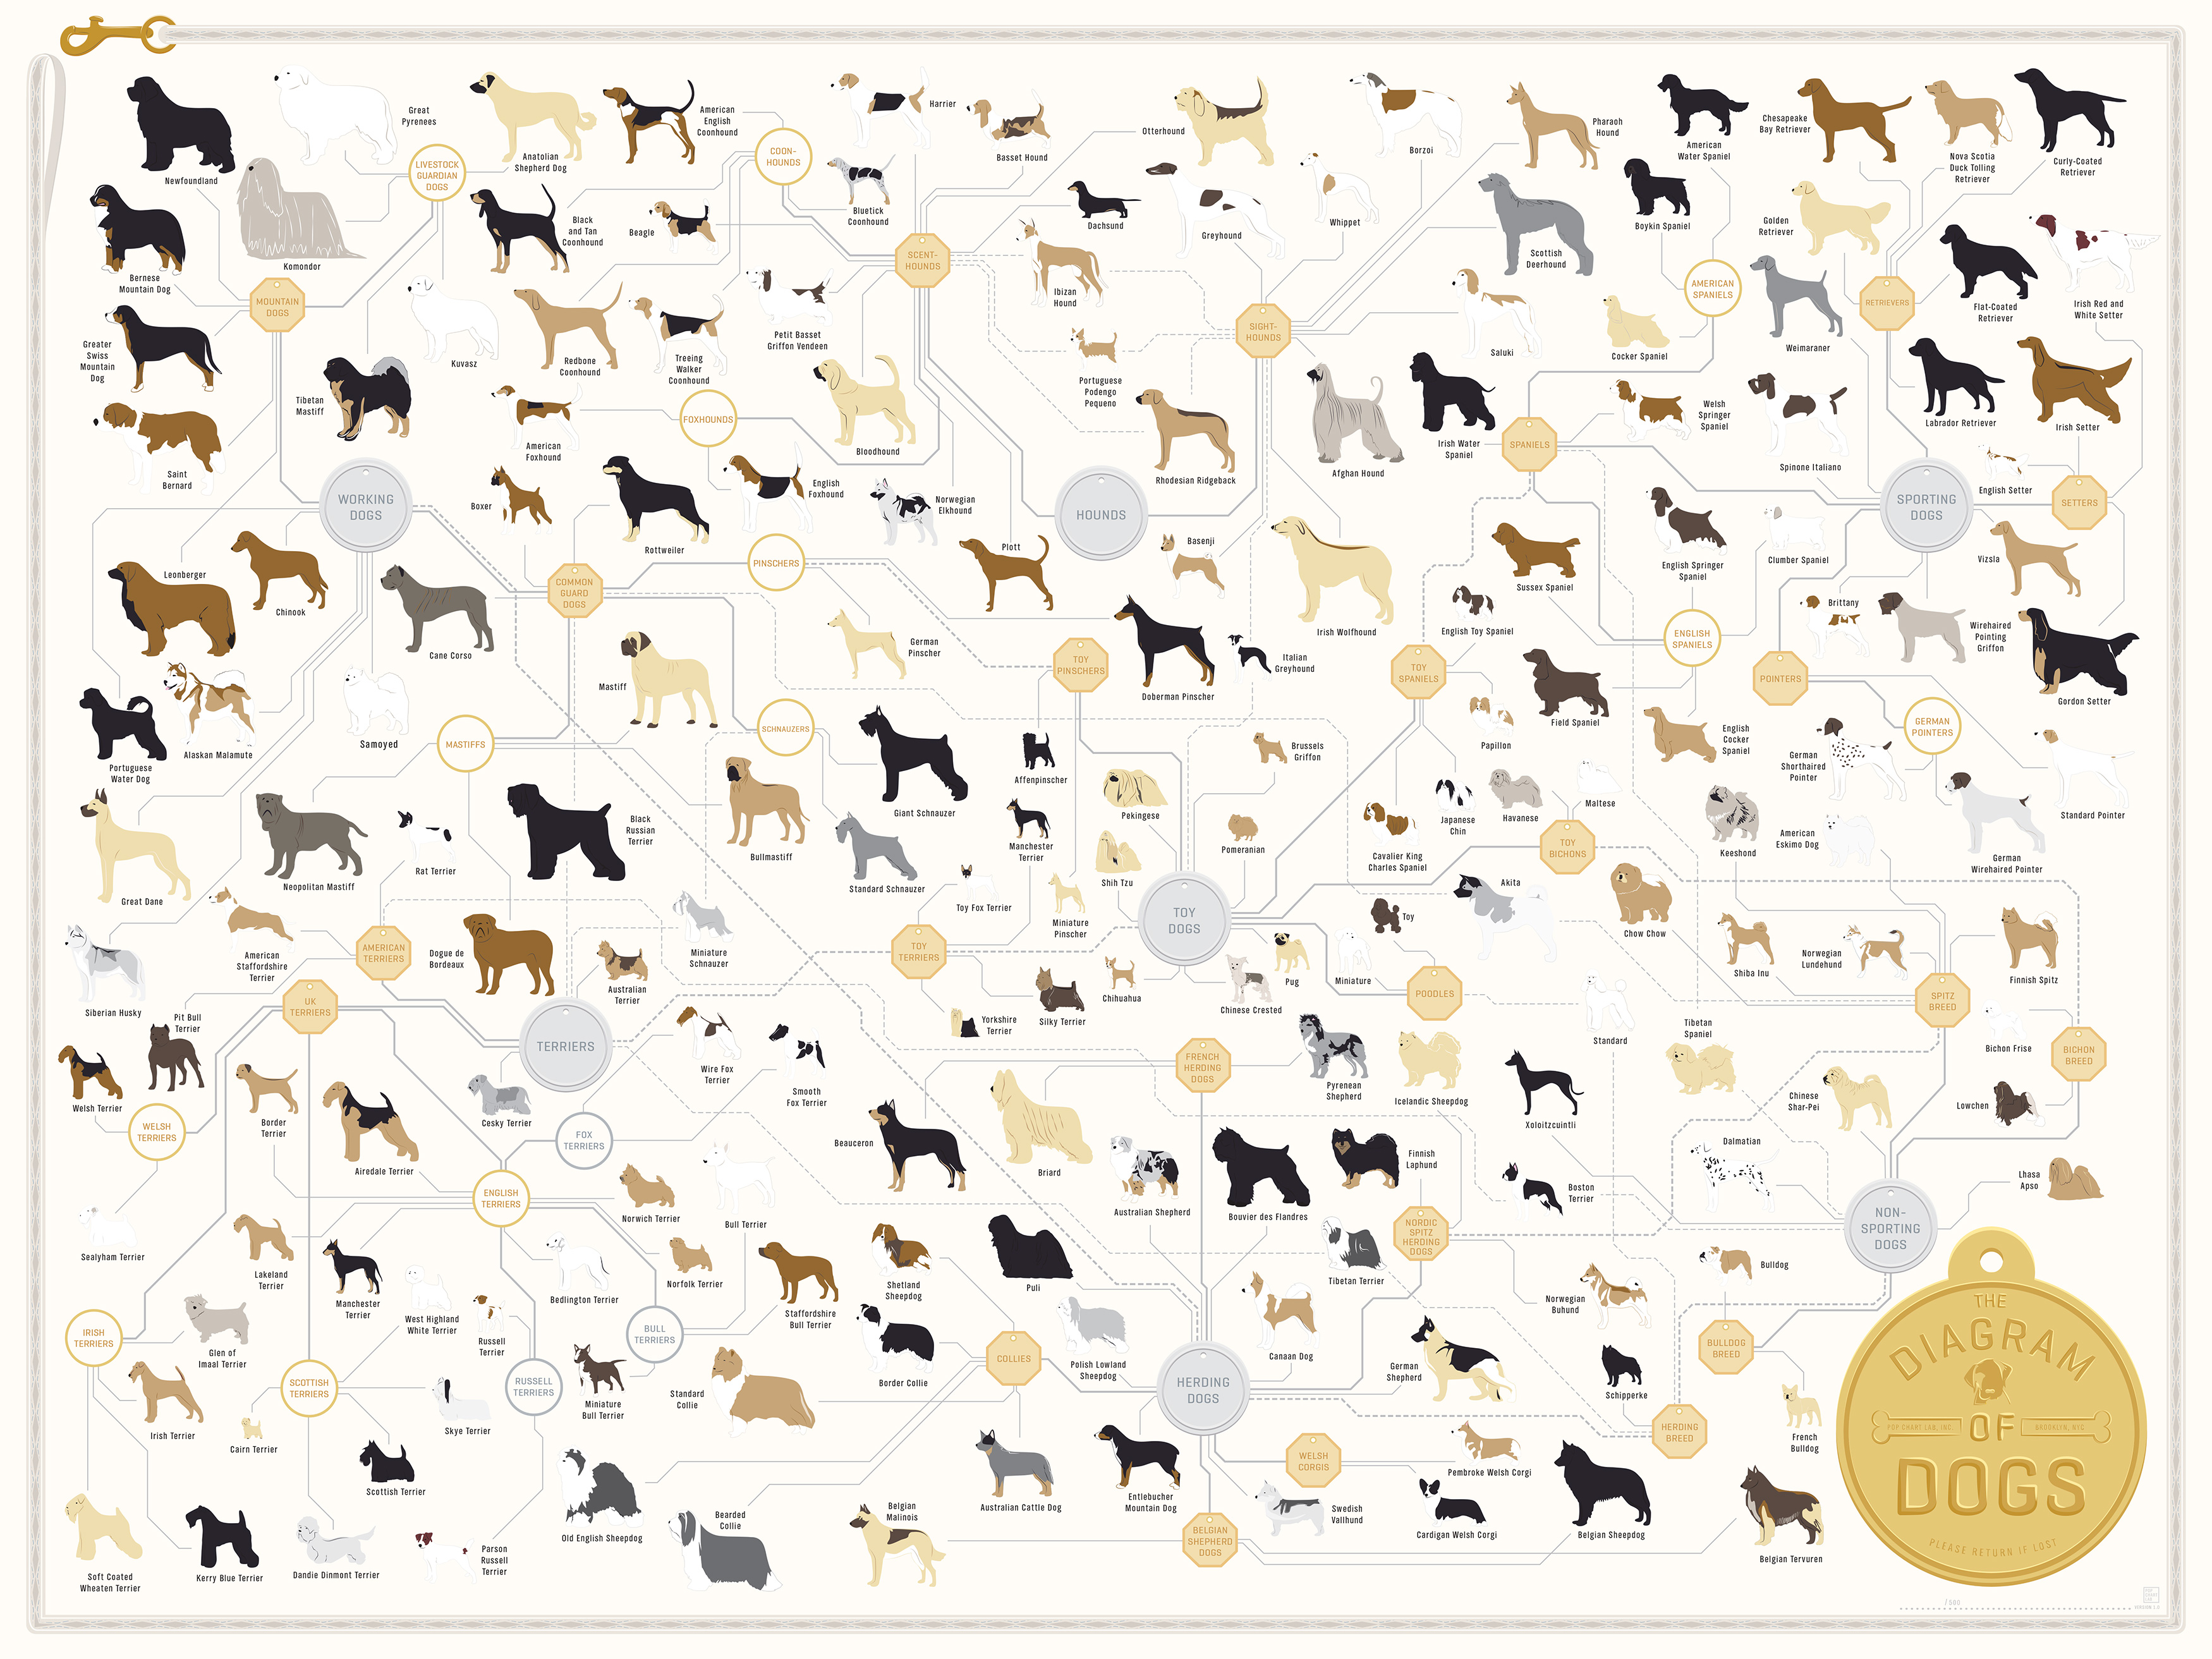 ... Diagram Of Dogs Featuring 181 Different Dog Breeds - DesignTAXI.com